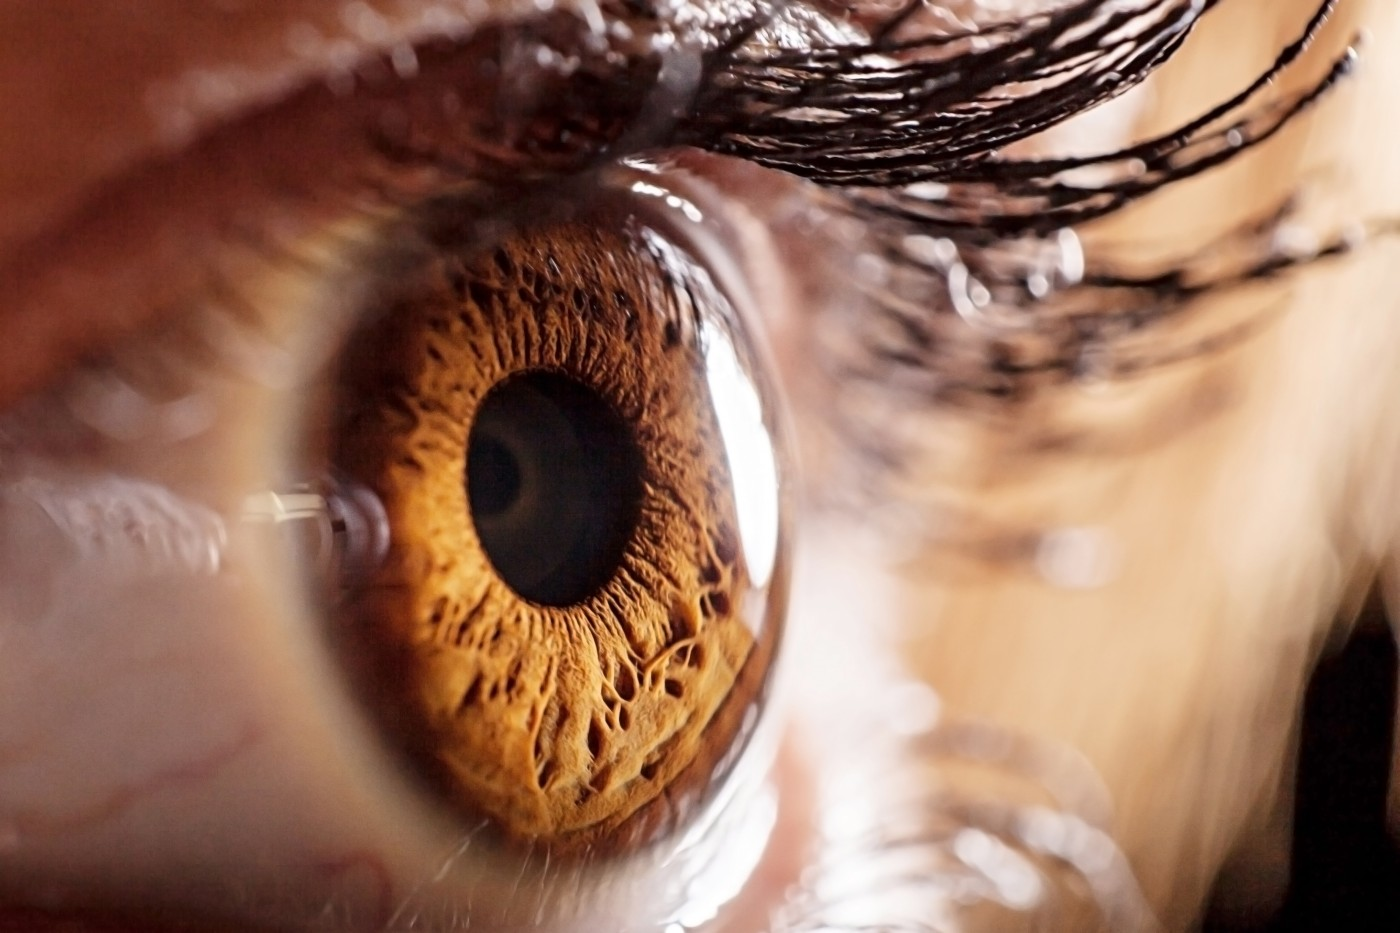 microRNA a potential therapy for Alzheimer's and macular degeneration